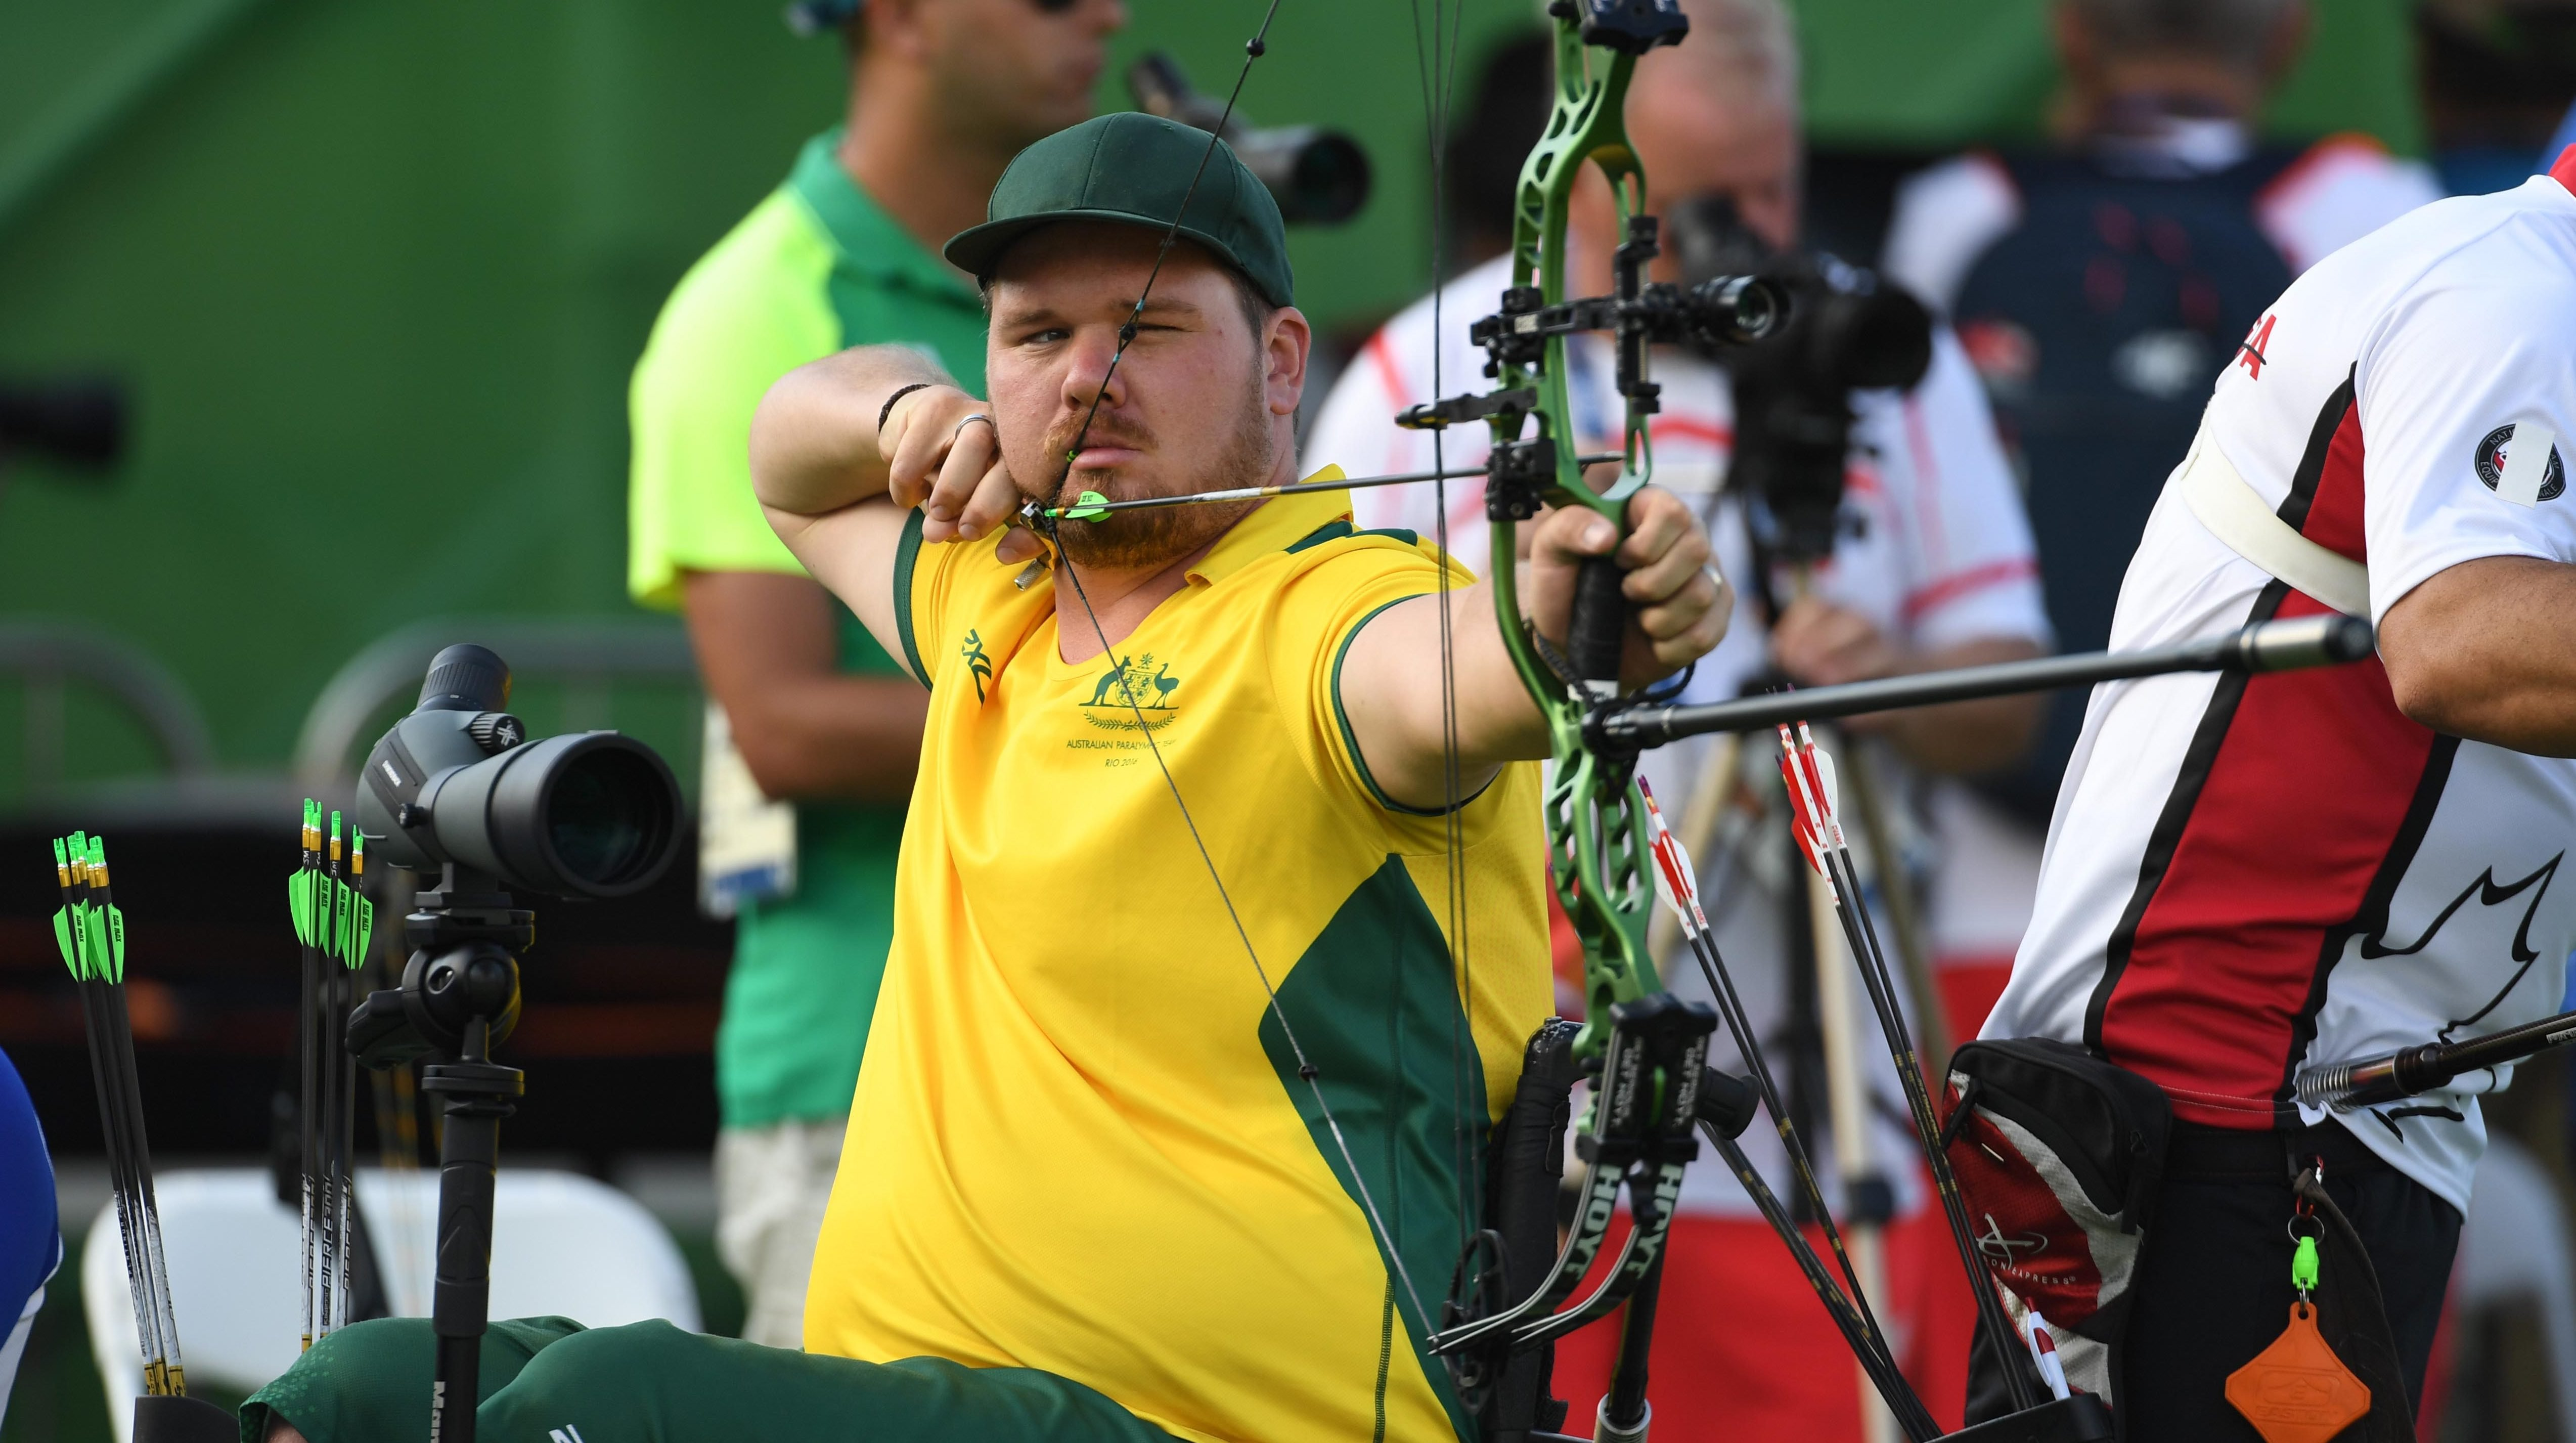 Four to target bullseye at the World Para-archery Championships